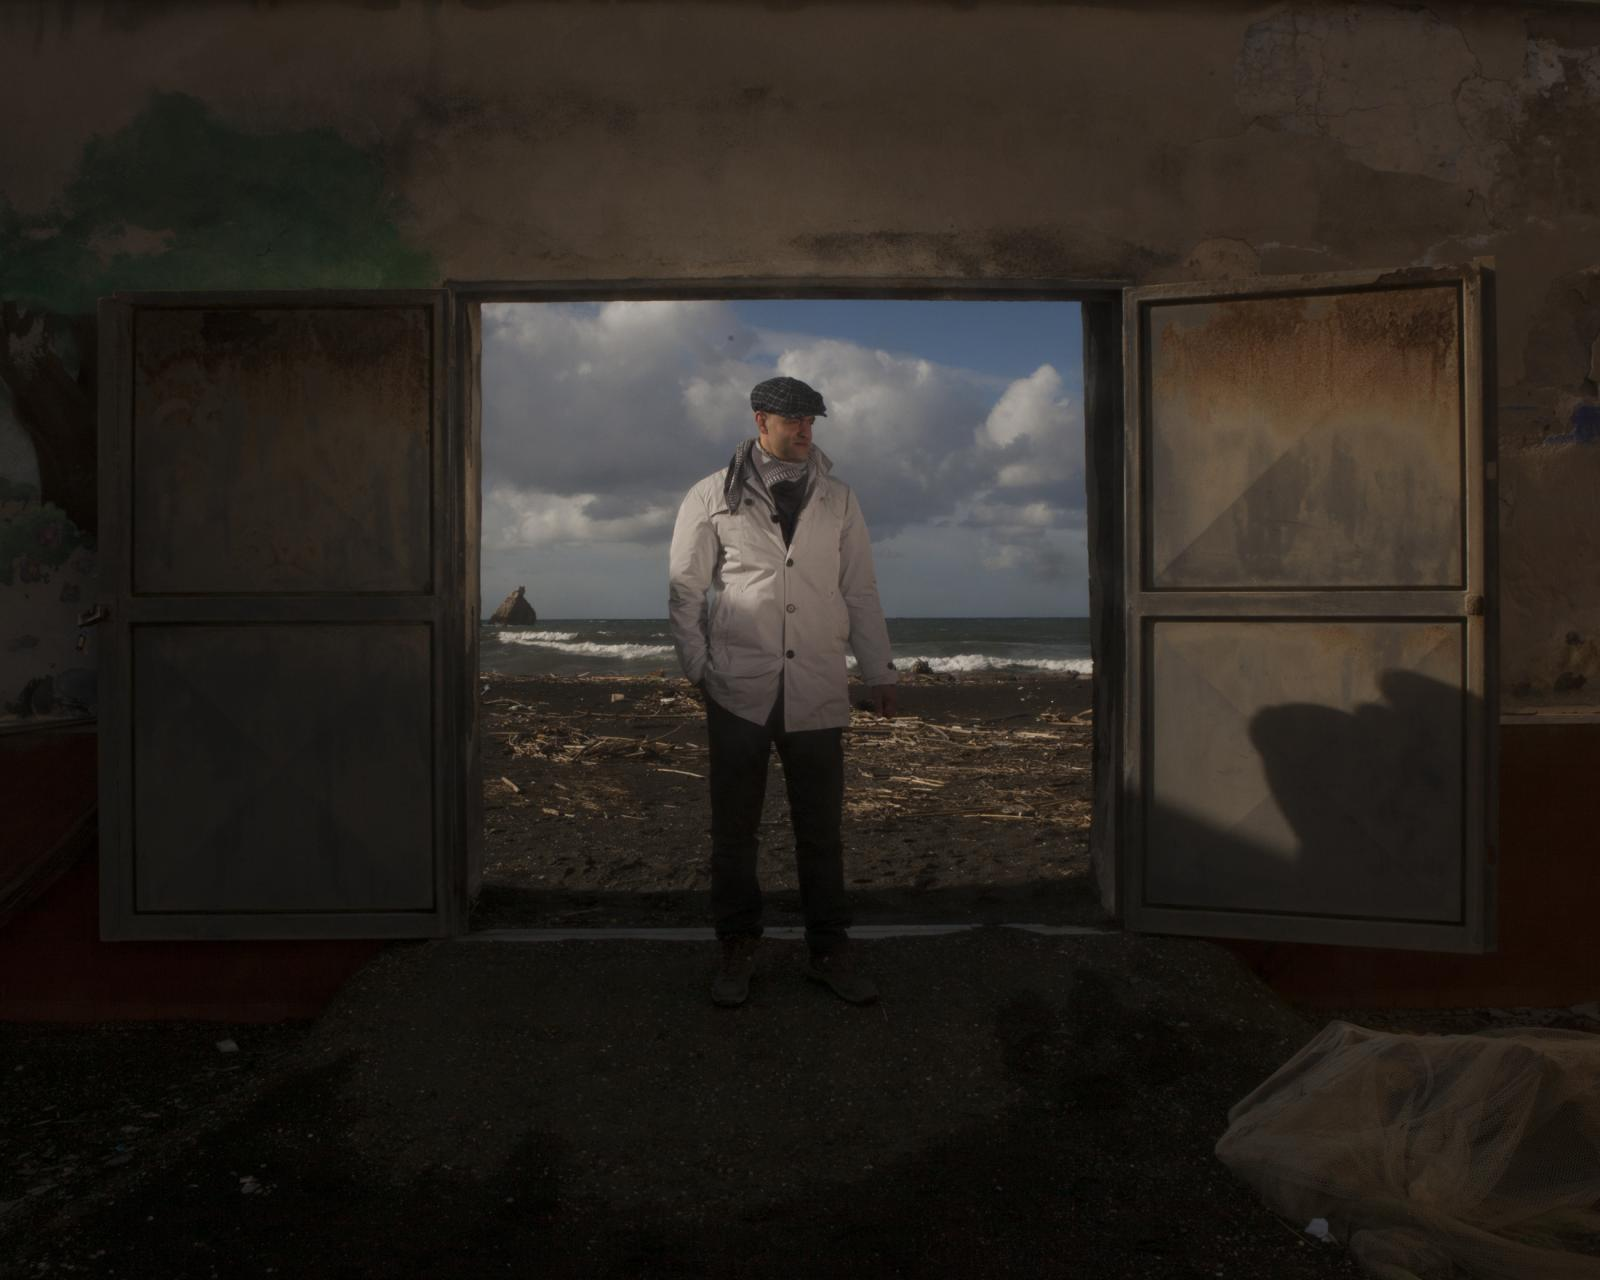 Torre Annunziata, November 2018. David poses for a portrait in front of the beach. He is part of an association that deals with the cleaning of beaches from waste brought from the sea. In fact, all the chemical and solid waste from the river that spills into the sea makes almost 10km of coast between the Gulf of Naples and the Amalfi Coast unfit for bathing because of the currents that send this waste back to shore and make the water polluted and harmful to health.